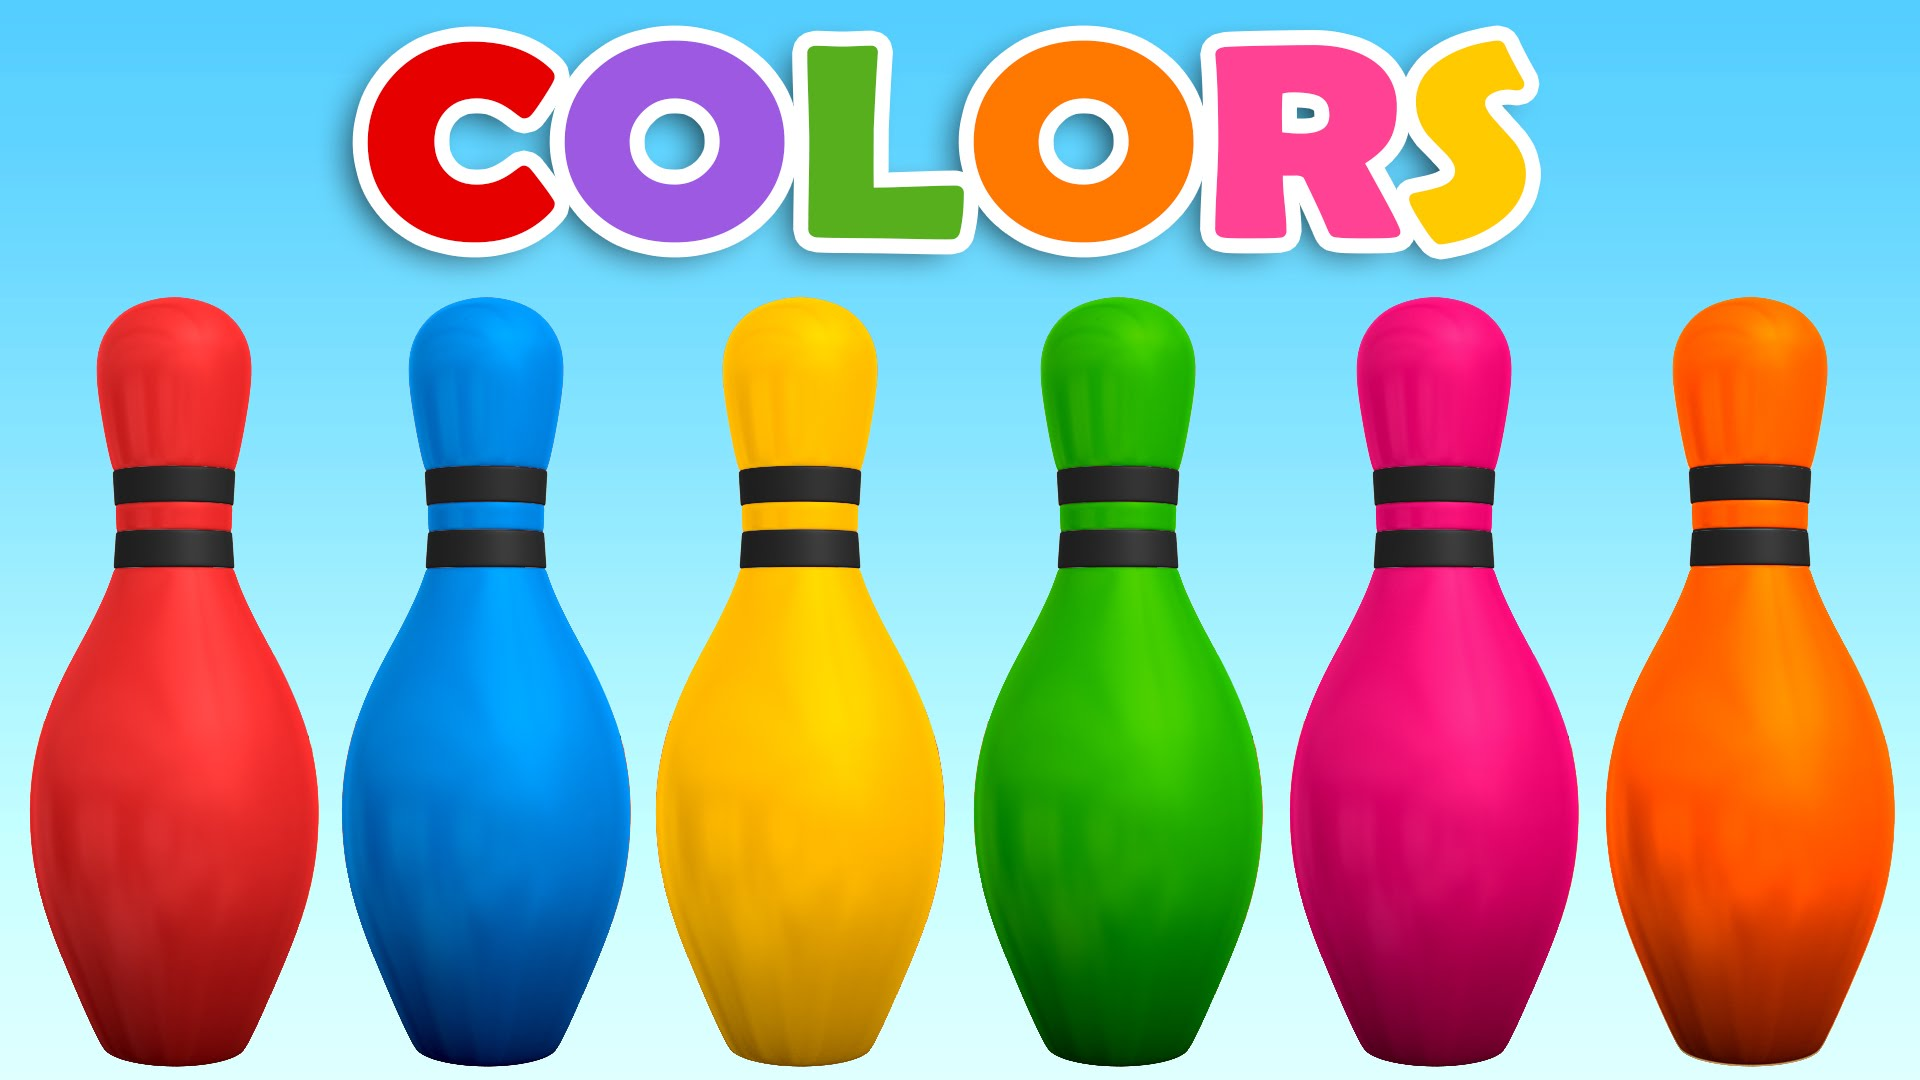 Bowling Clipart Colorful Bowling Colorful Transparent